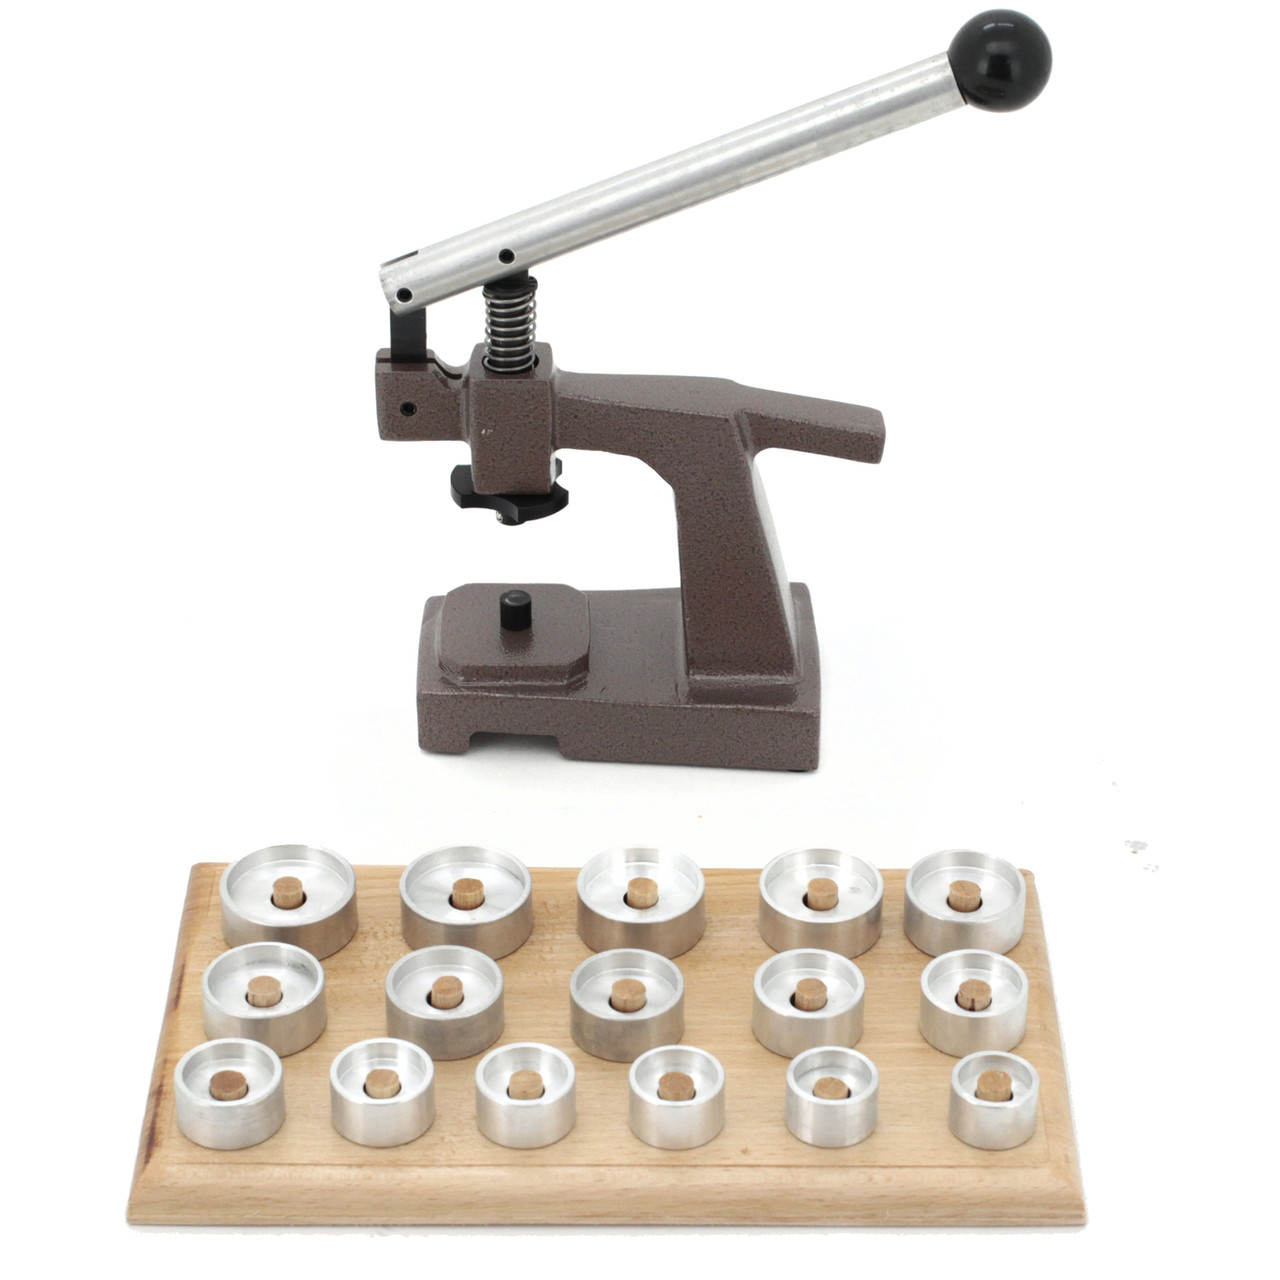 Watch Case Press with 16 DIES / Wooden BASE -PRS1 - Front